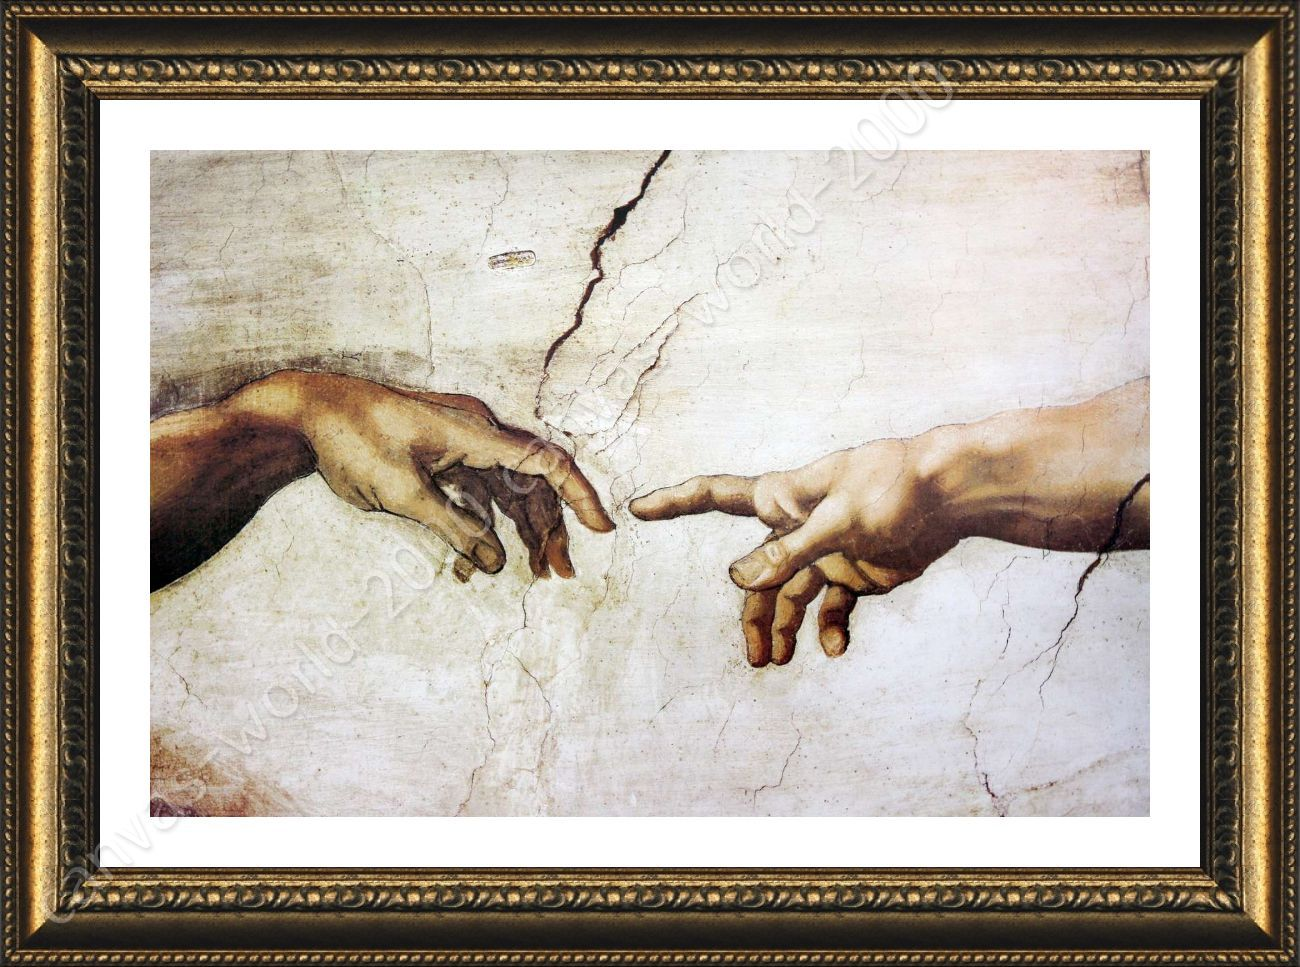 The Creation Of Man by Michelangelo | Framed canvas | Artwork For ...